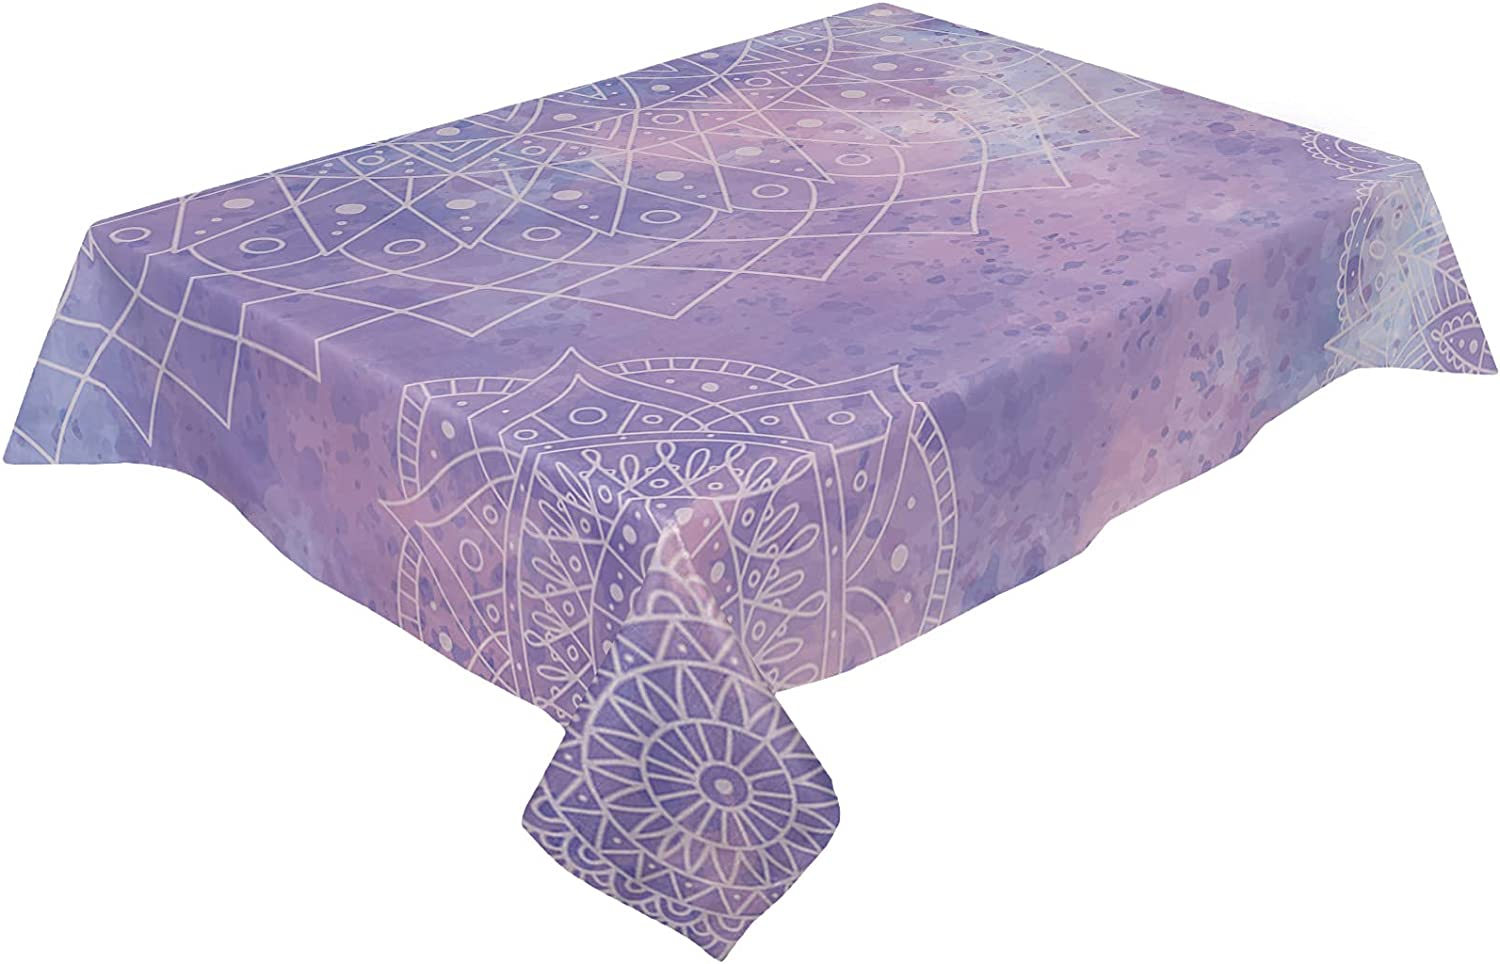 Savannan Rectangle Kitchen Omaha Mall Tablecloth Dust-Proof 54x79inch Burla Outlet ☆ Free Shipping